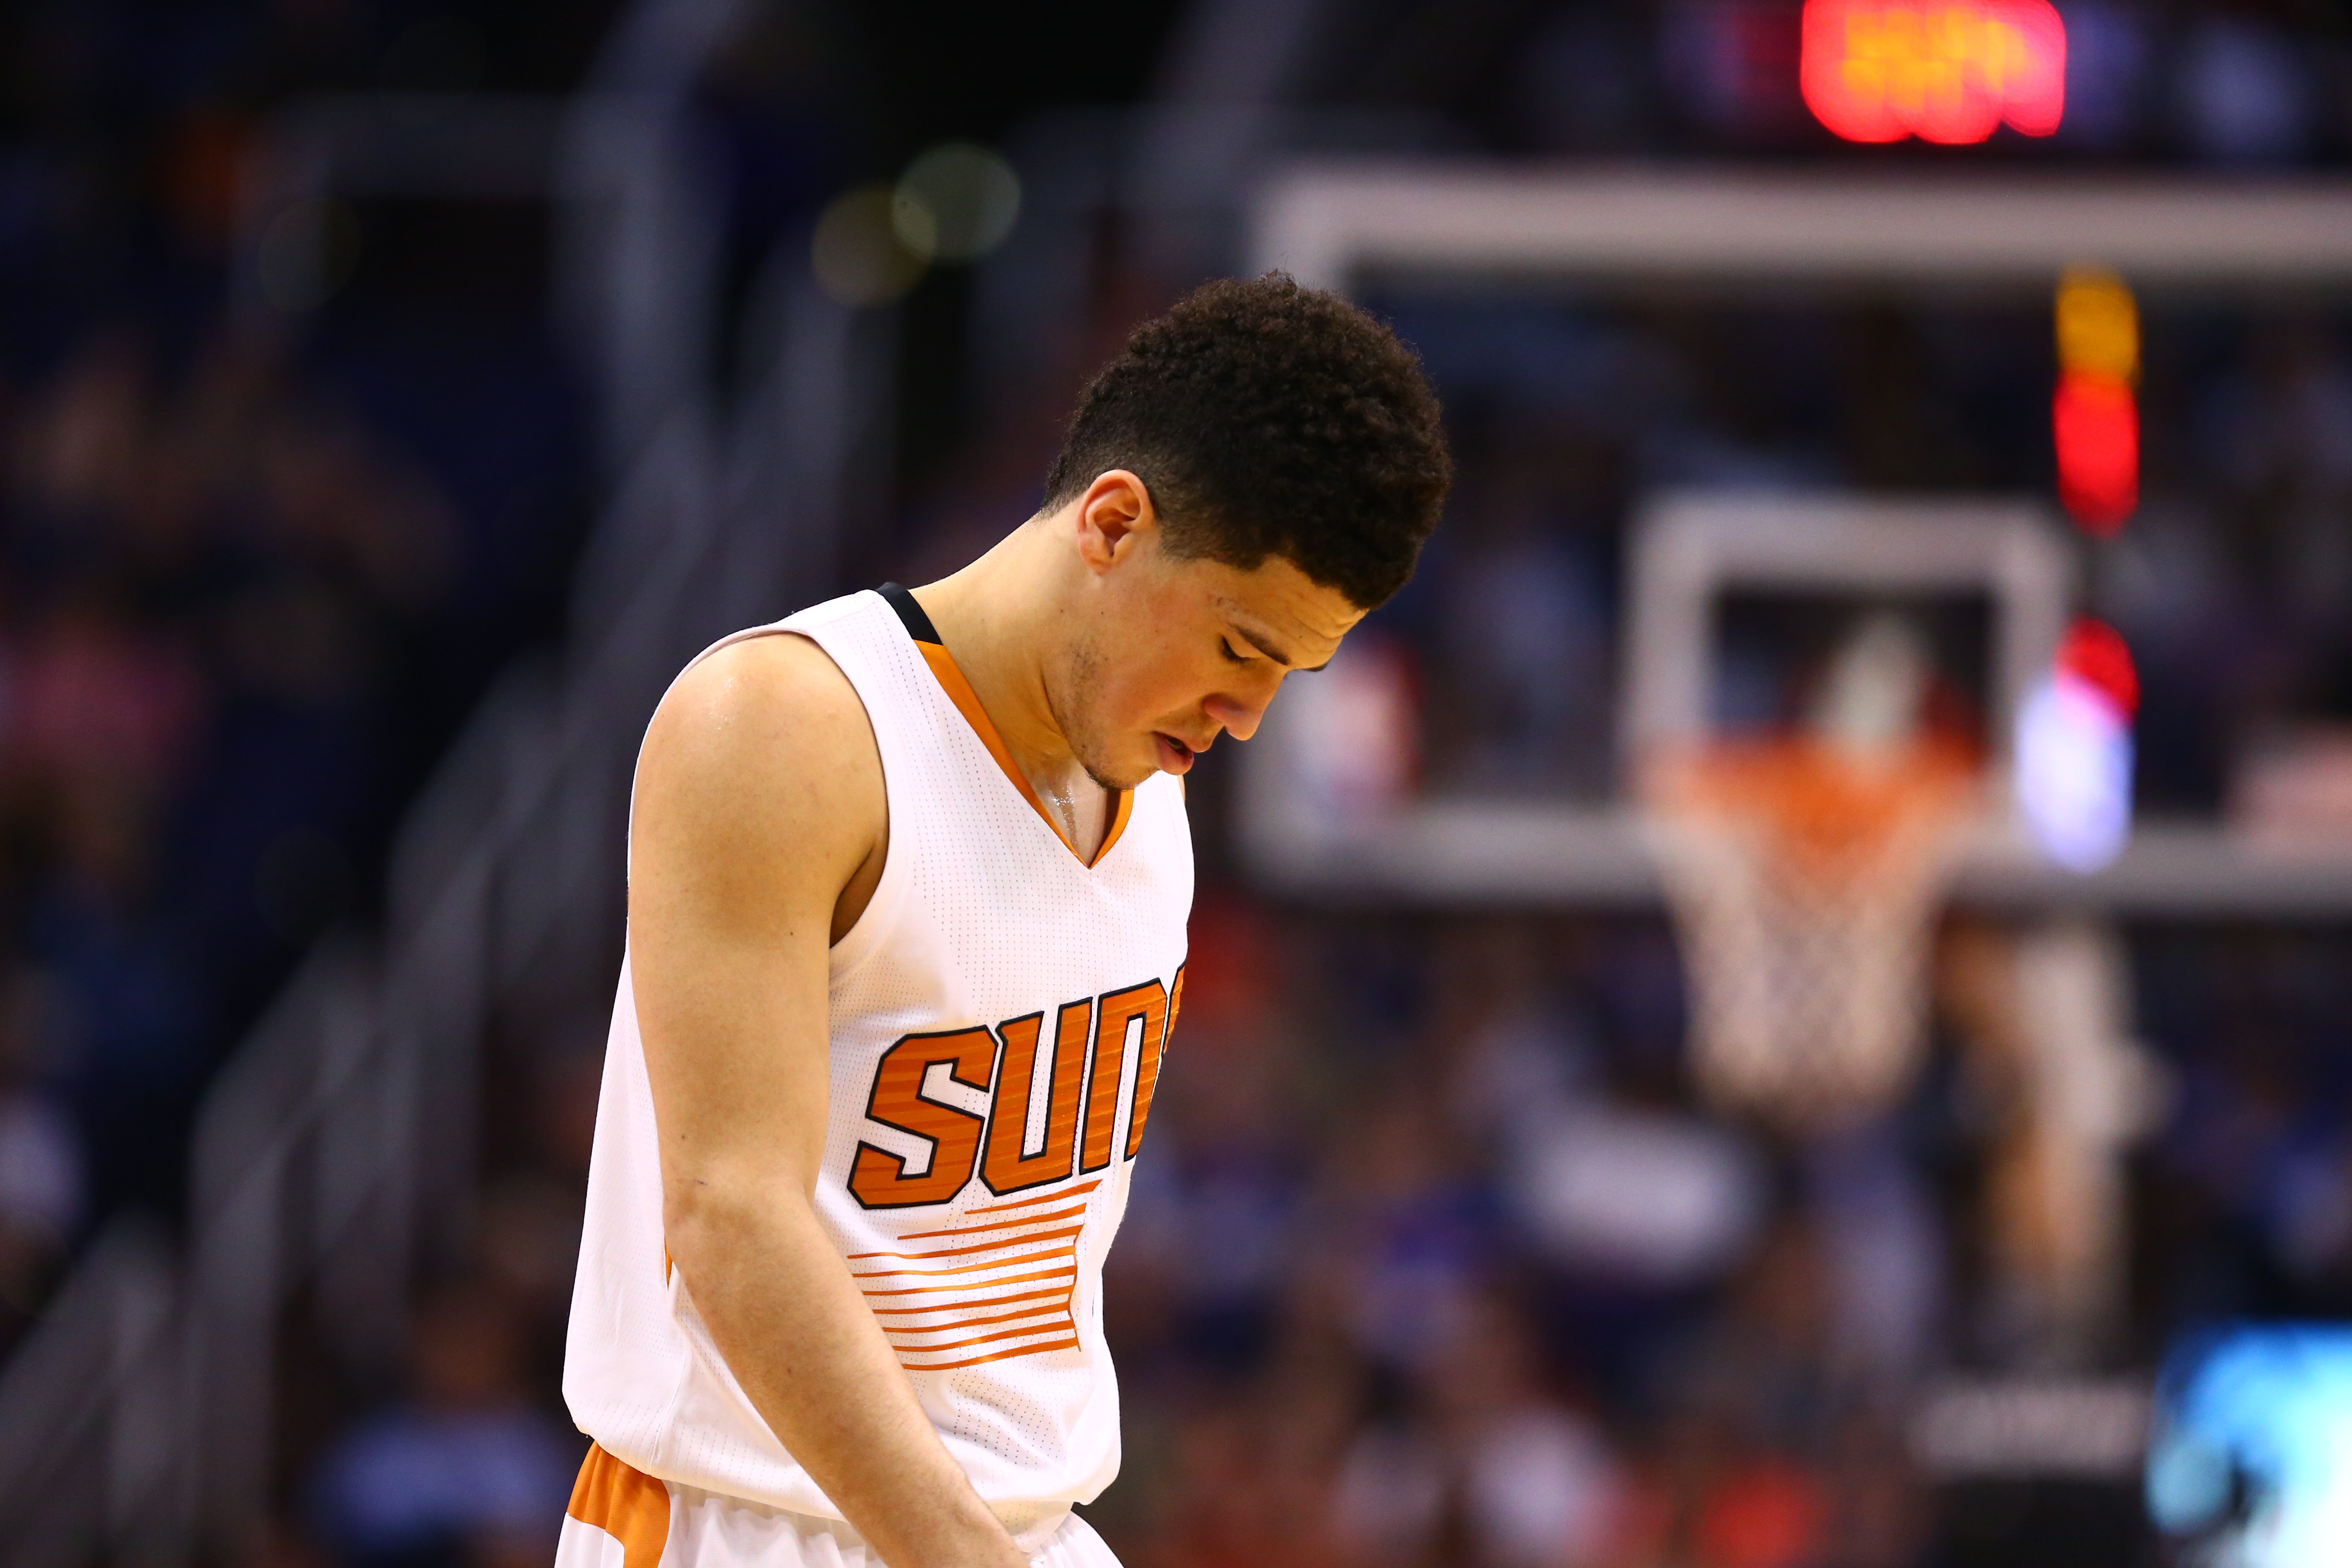 10015660-nba-oklahoma-city-thunder-at-phoenix-suns